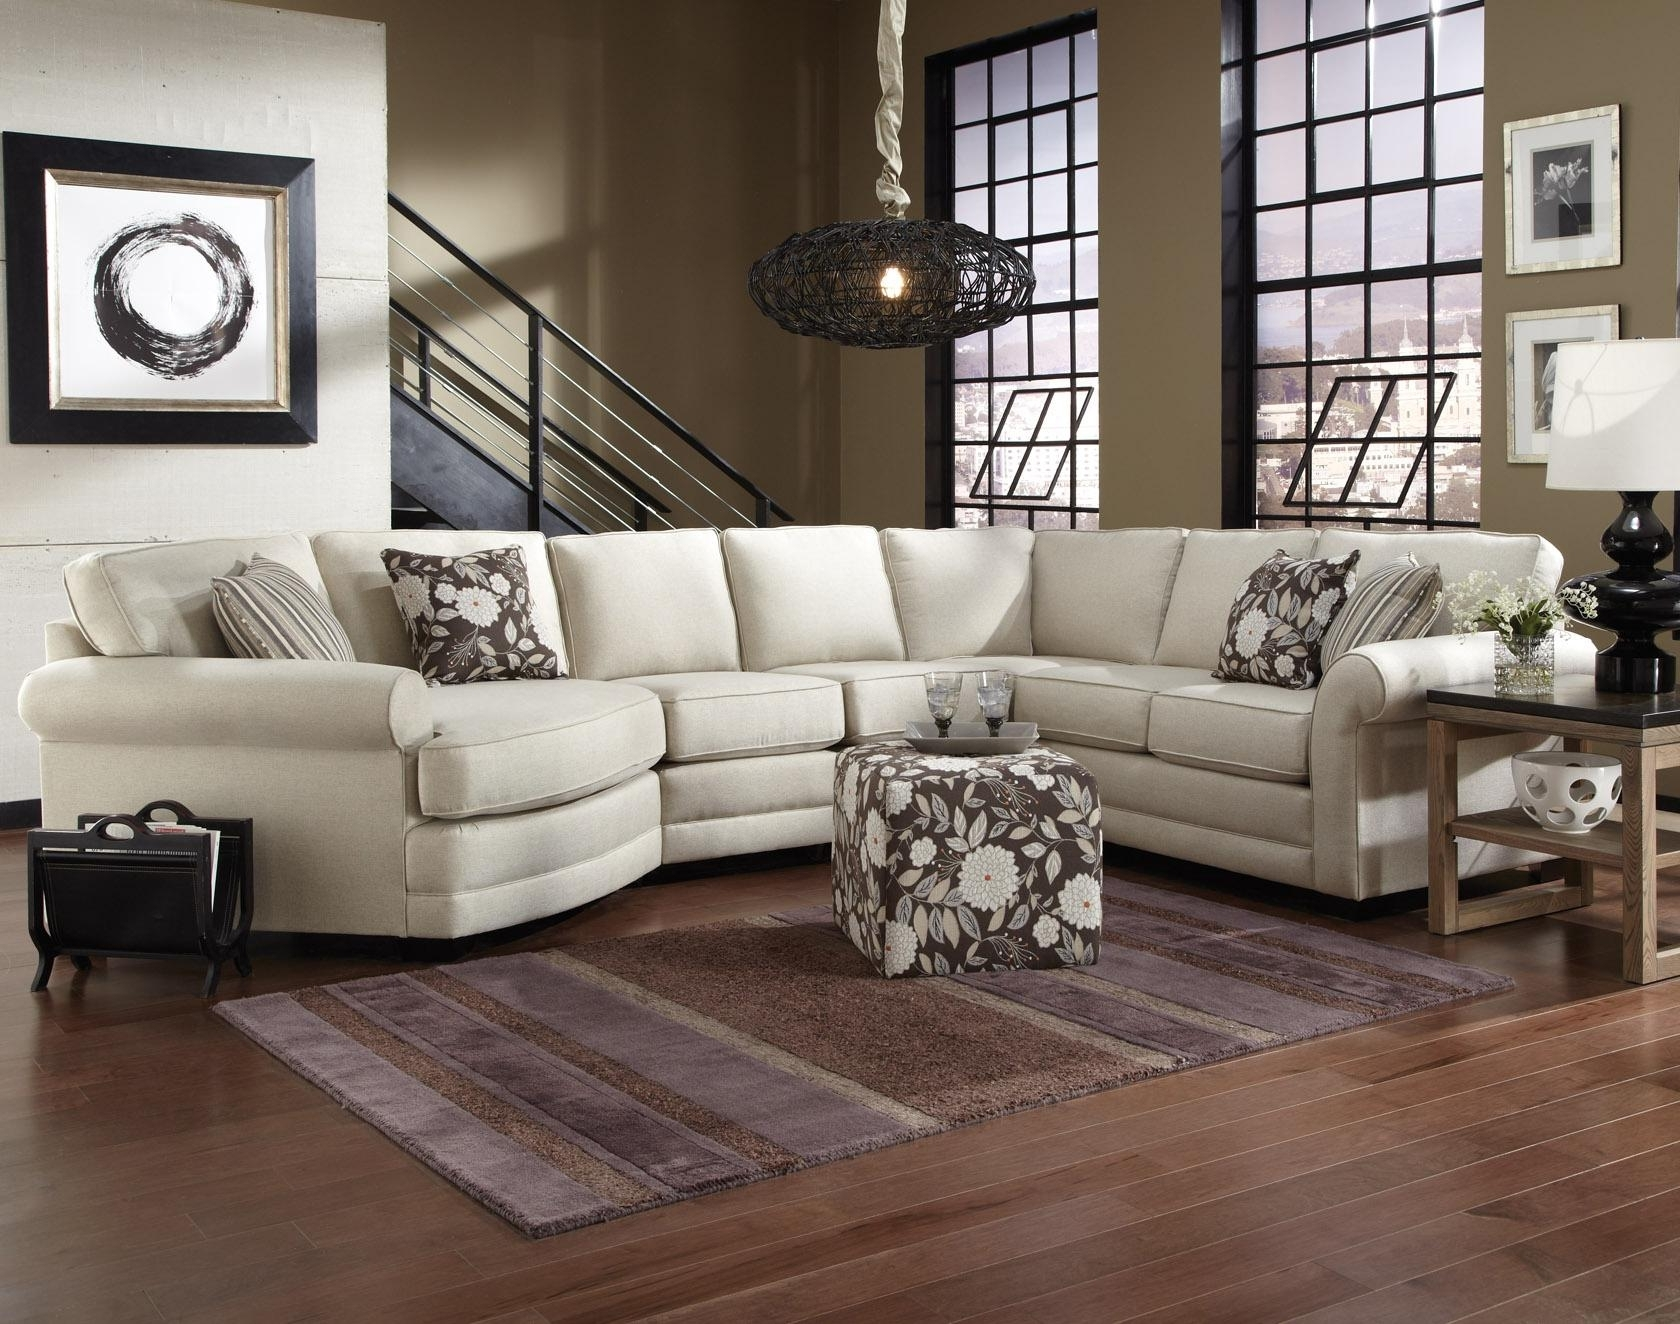 England Brantley 5 Seat Sectional Sofa With Cuddler – Ahfa – Sofa For Most Popular Little Rock Ar Sectional Sofas (View 14 of 15)